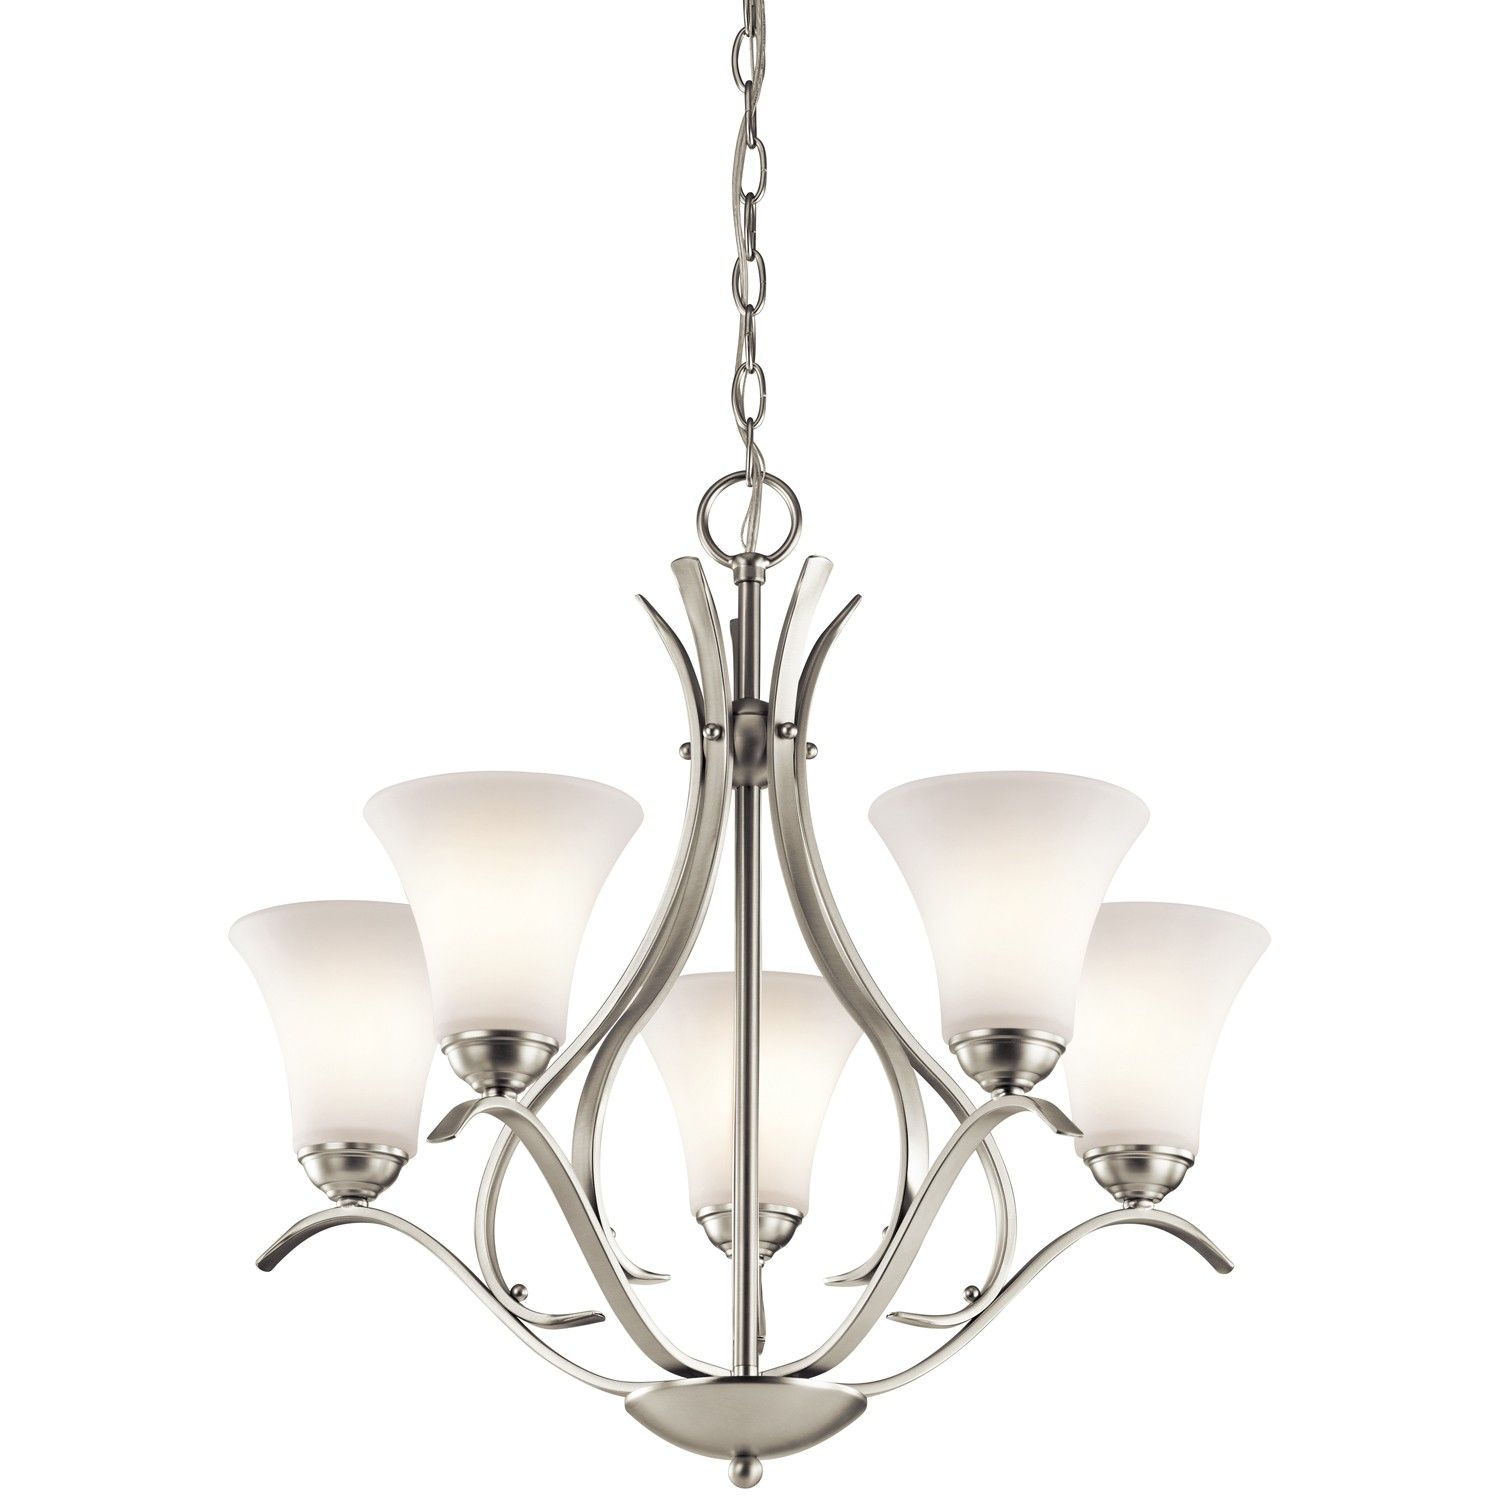 Brushed Nickel Dining Room Light Fixtures Dining Room Light  Keiran 5Light Chandelier In Brushed Nickel